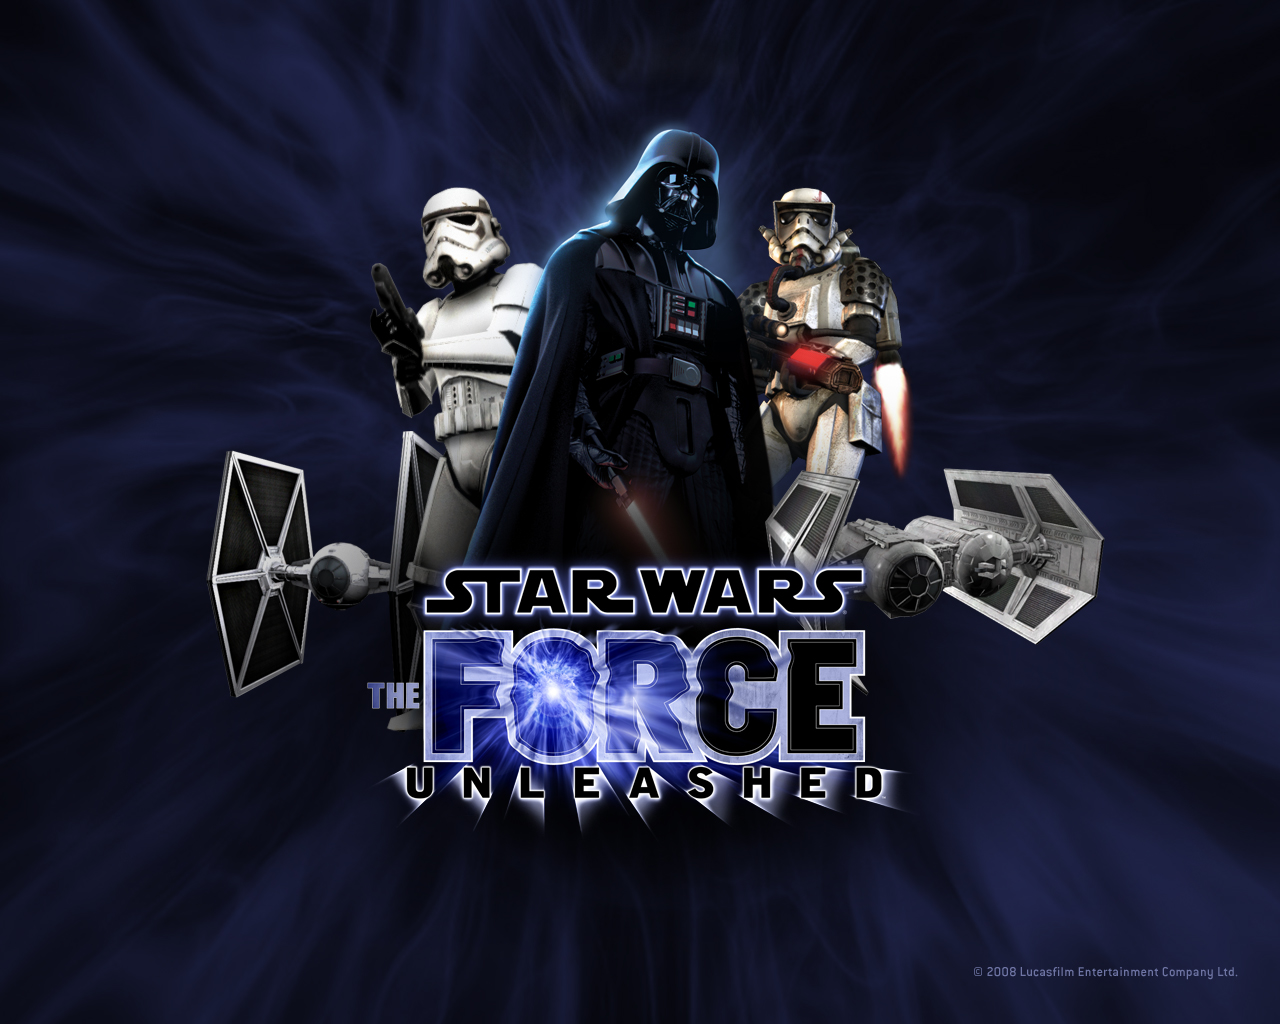 Star Wars The Force Unleashed Wallpaper 4 1280 1024